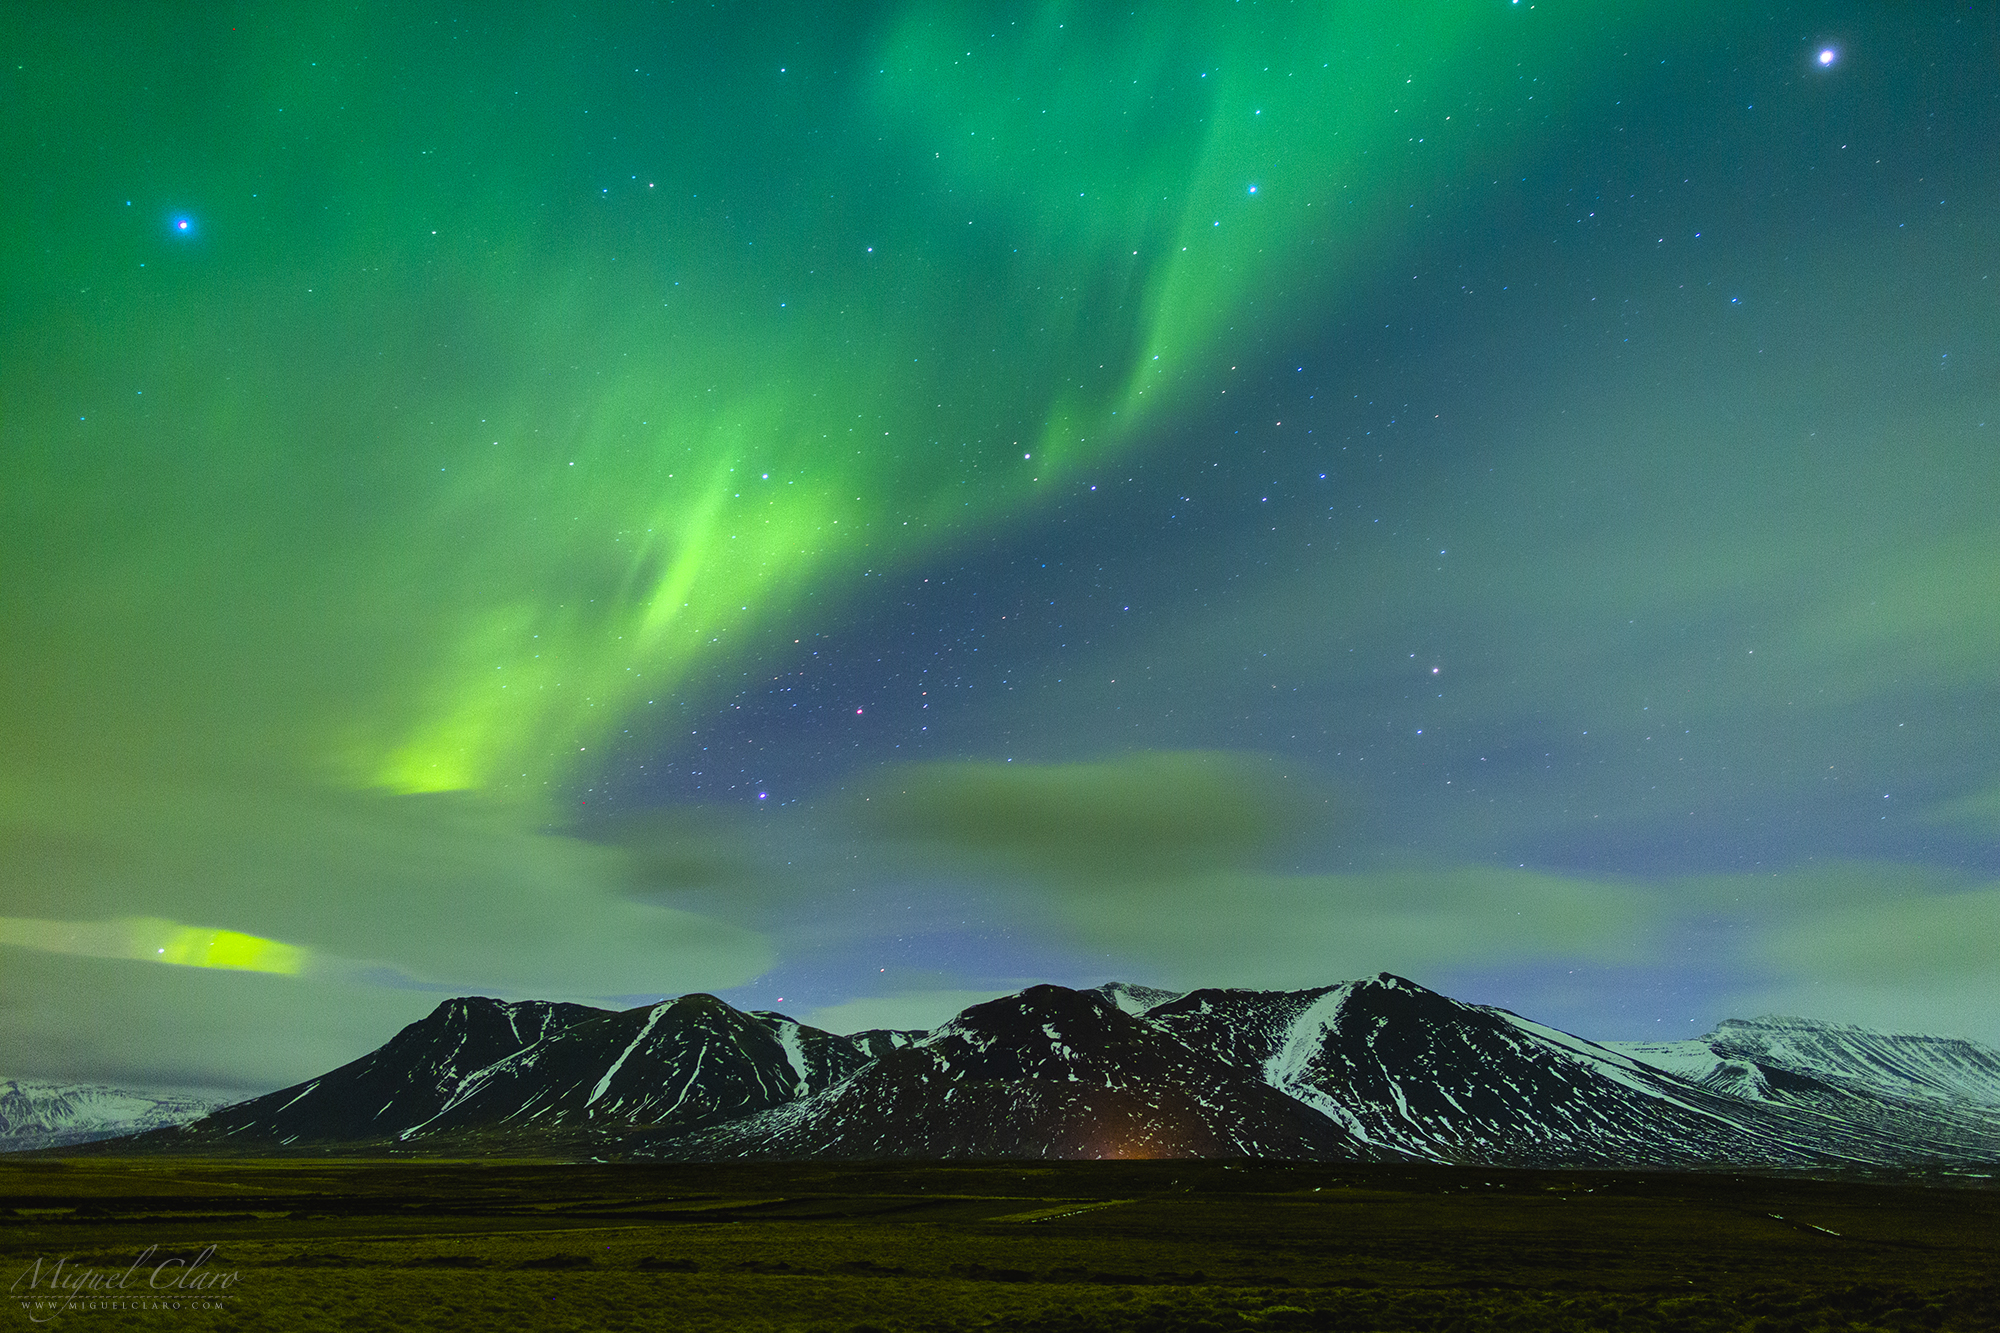 Green Lights Over Snowy Mountains From Iceland Astrophotography By